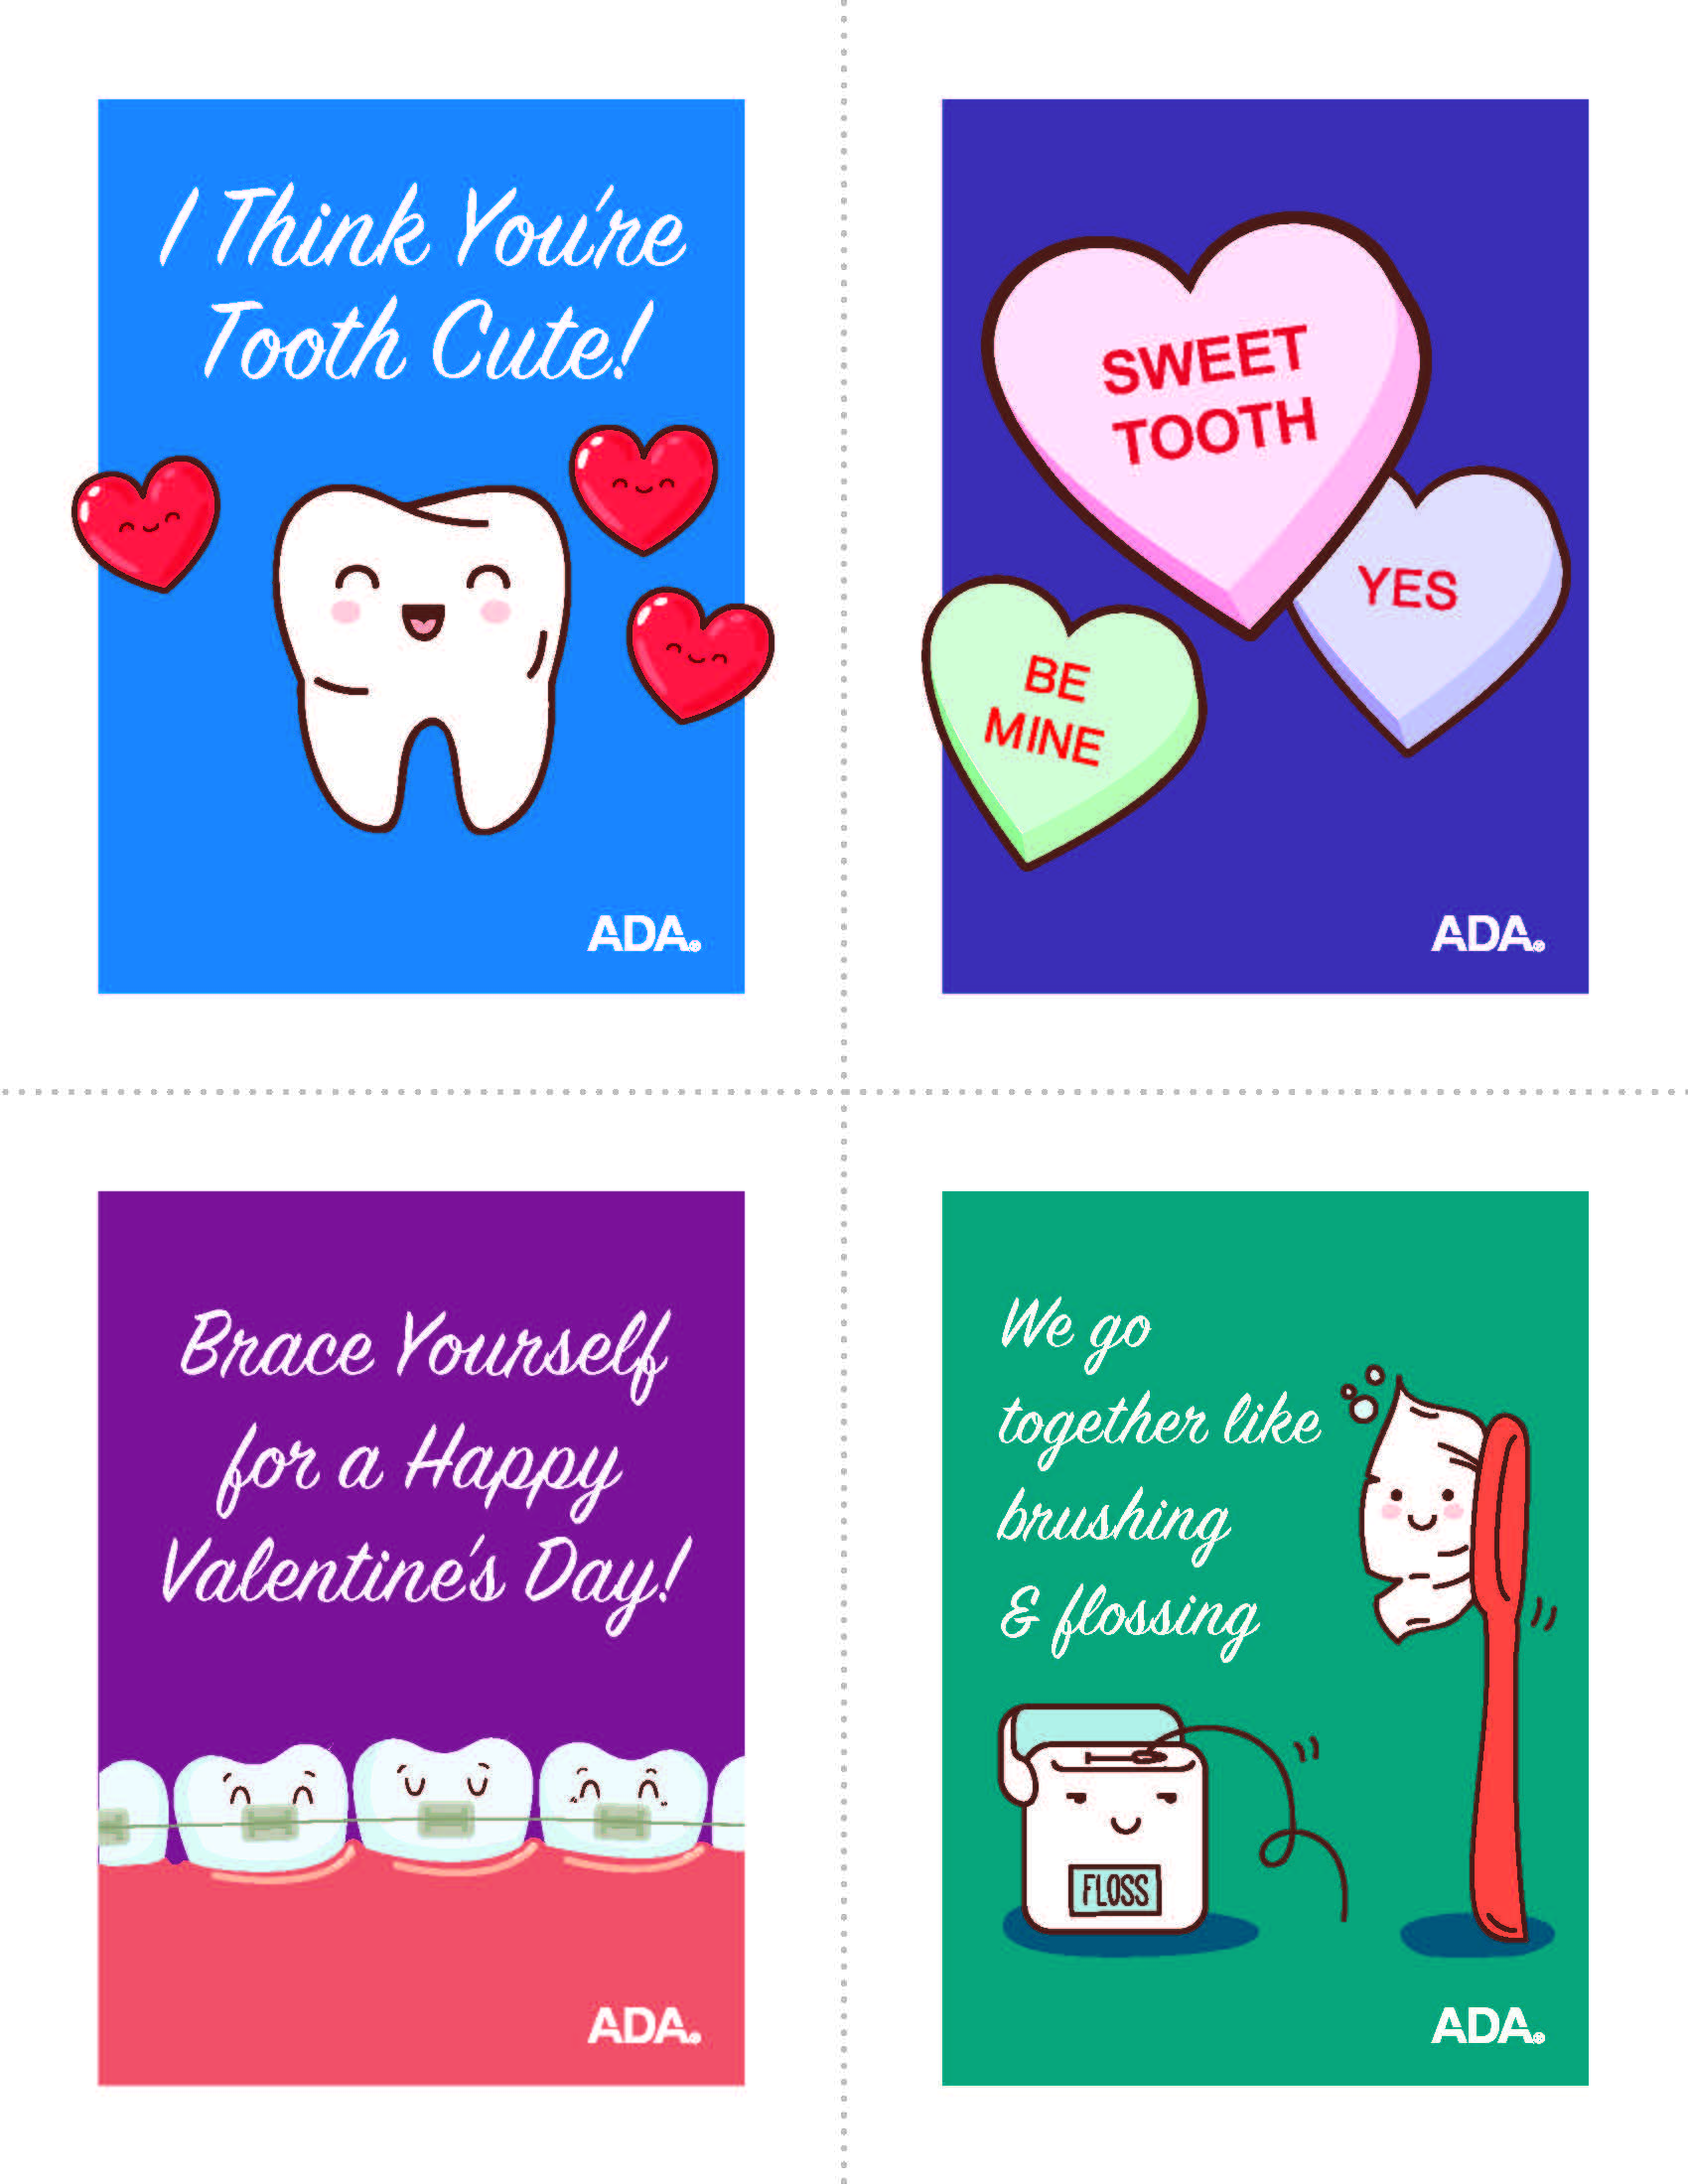 Western Dental Kids - Valentine Card 1